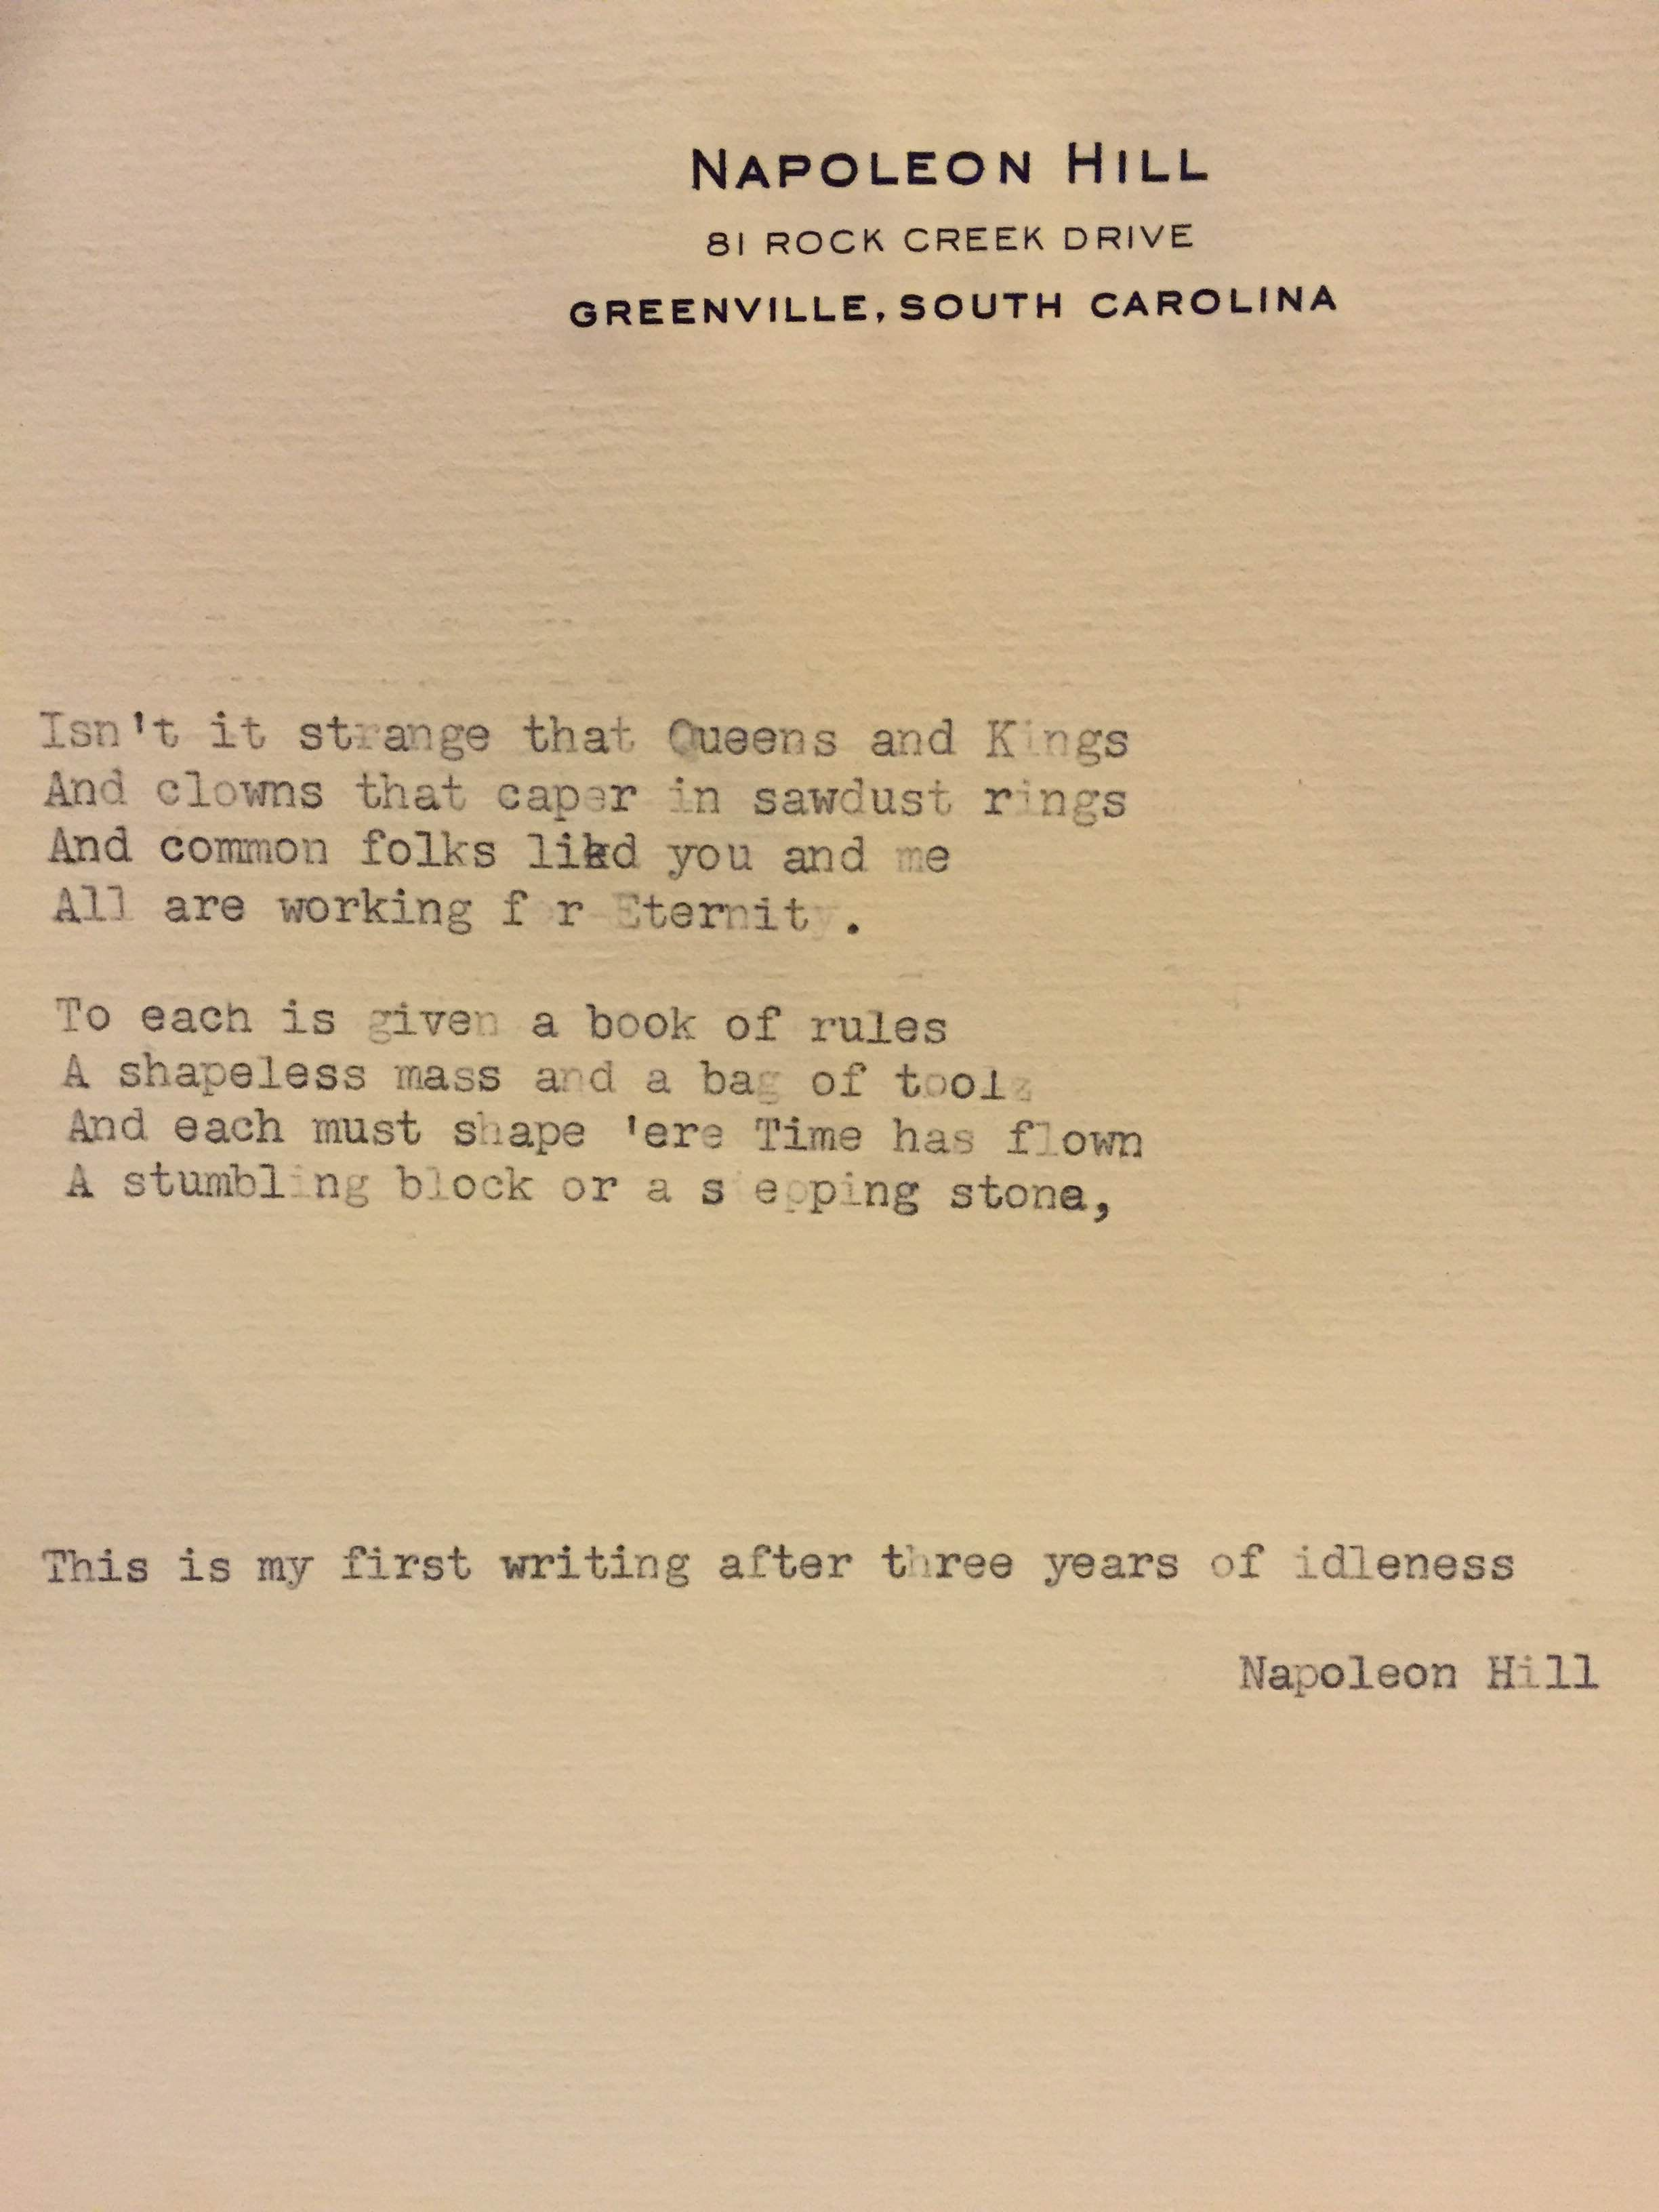 from the napoleon hill foundation archives a short poem written by